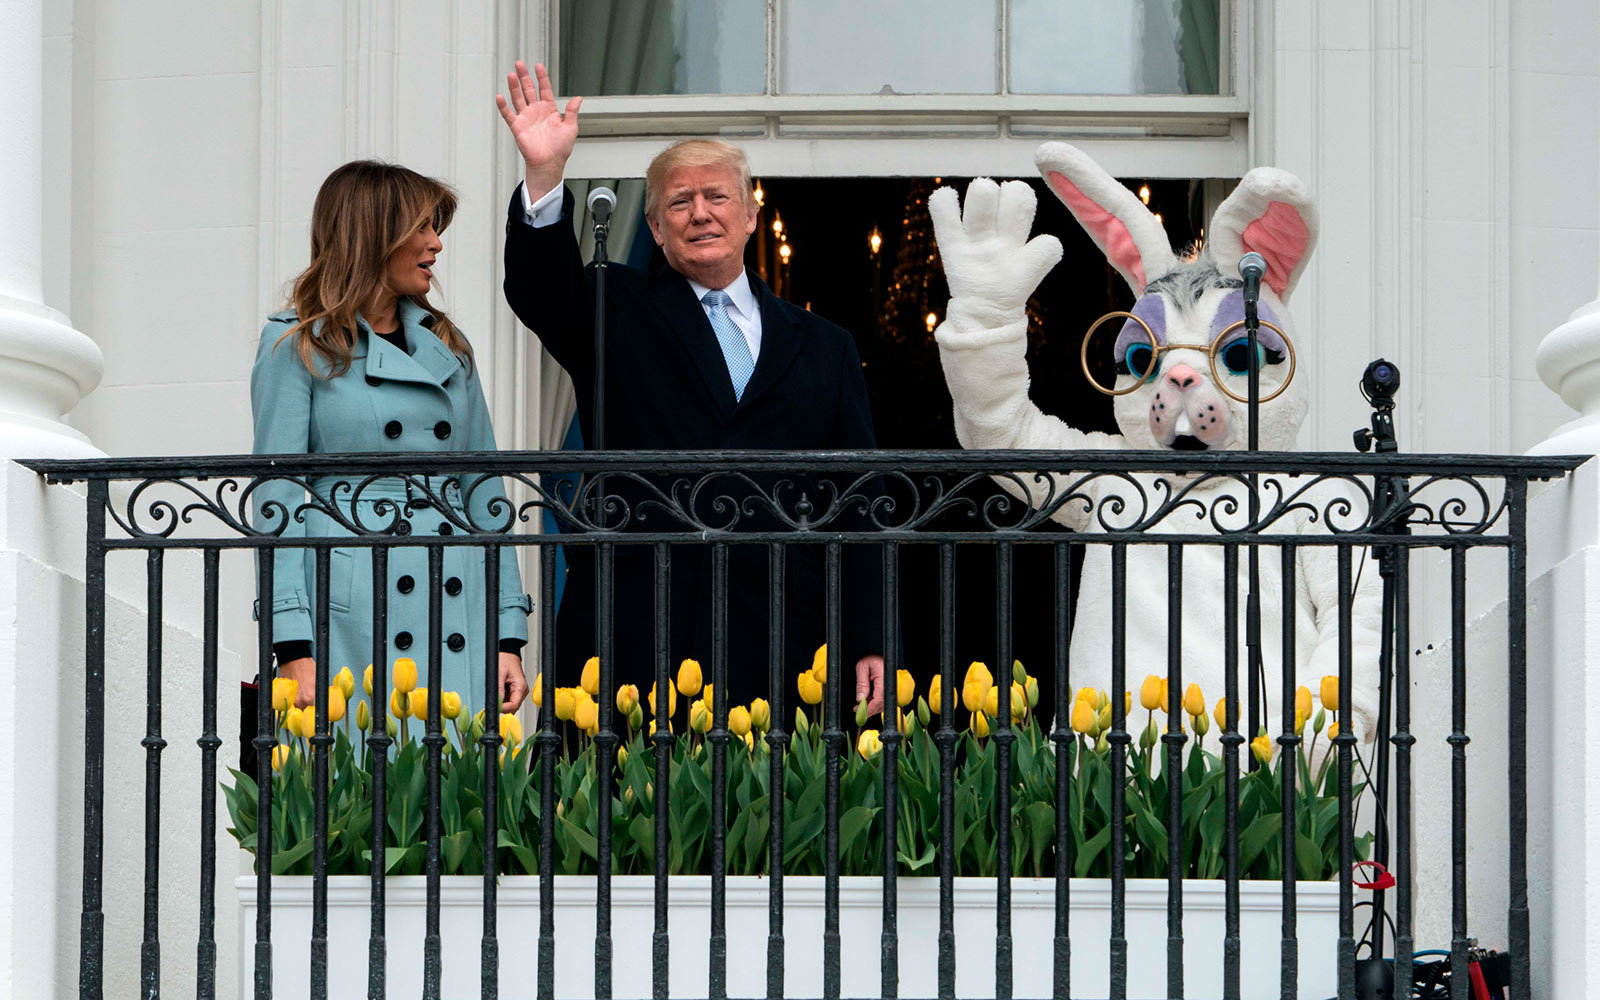 Donald and Melania Trump at the White House Easter Egg Roll in 2018